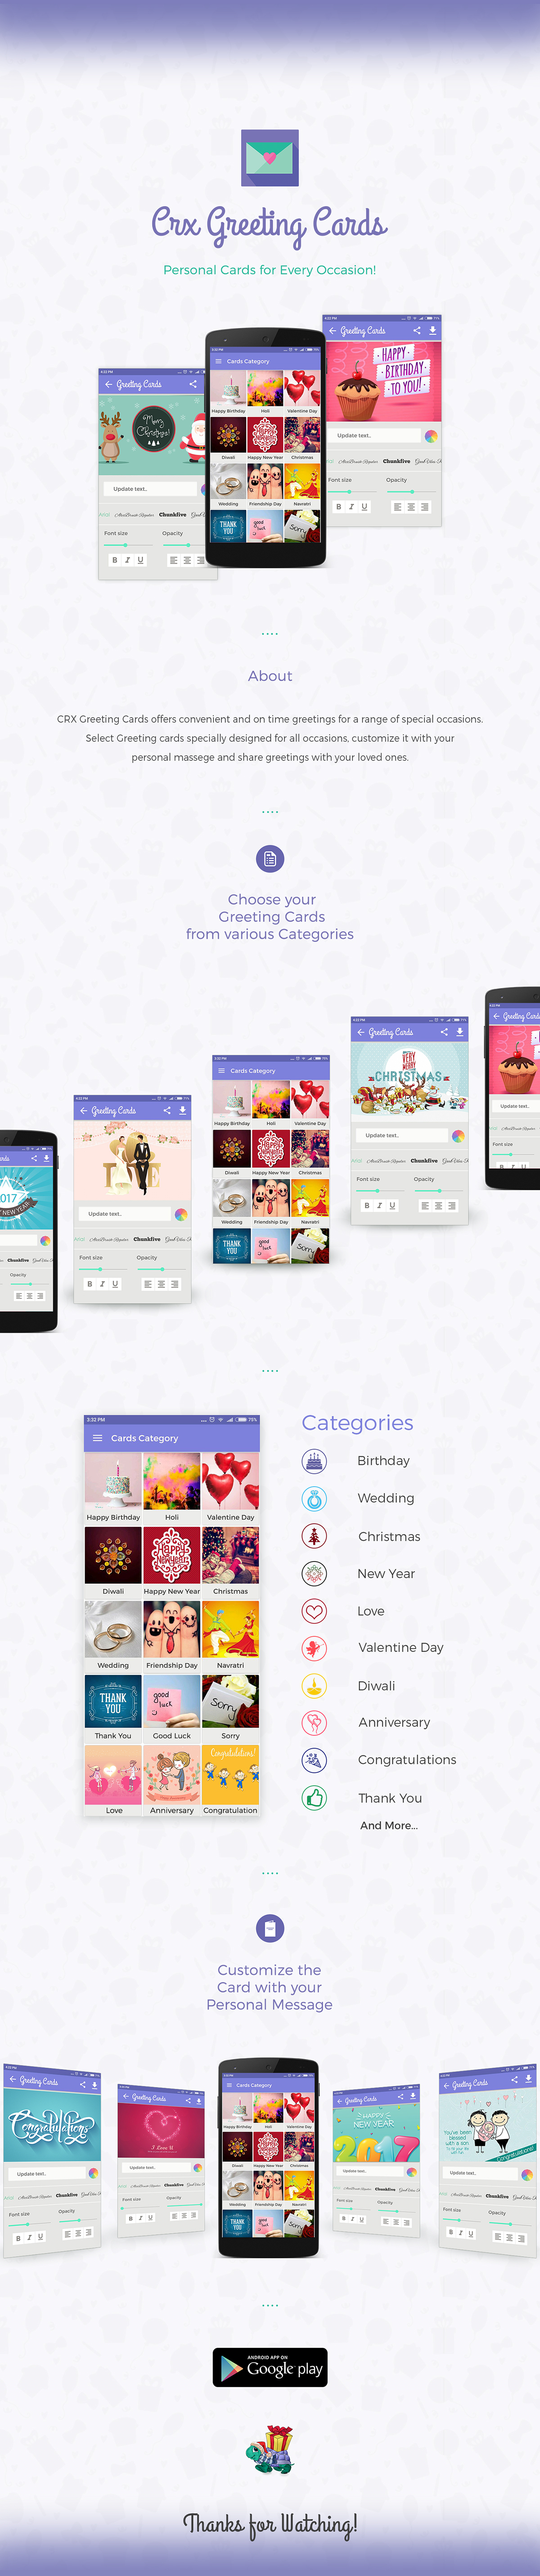 Crx Greeting Cards Android App On Student Show